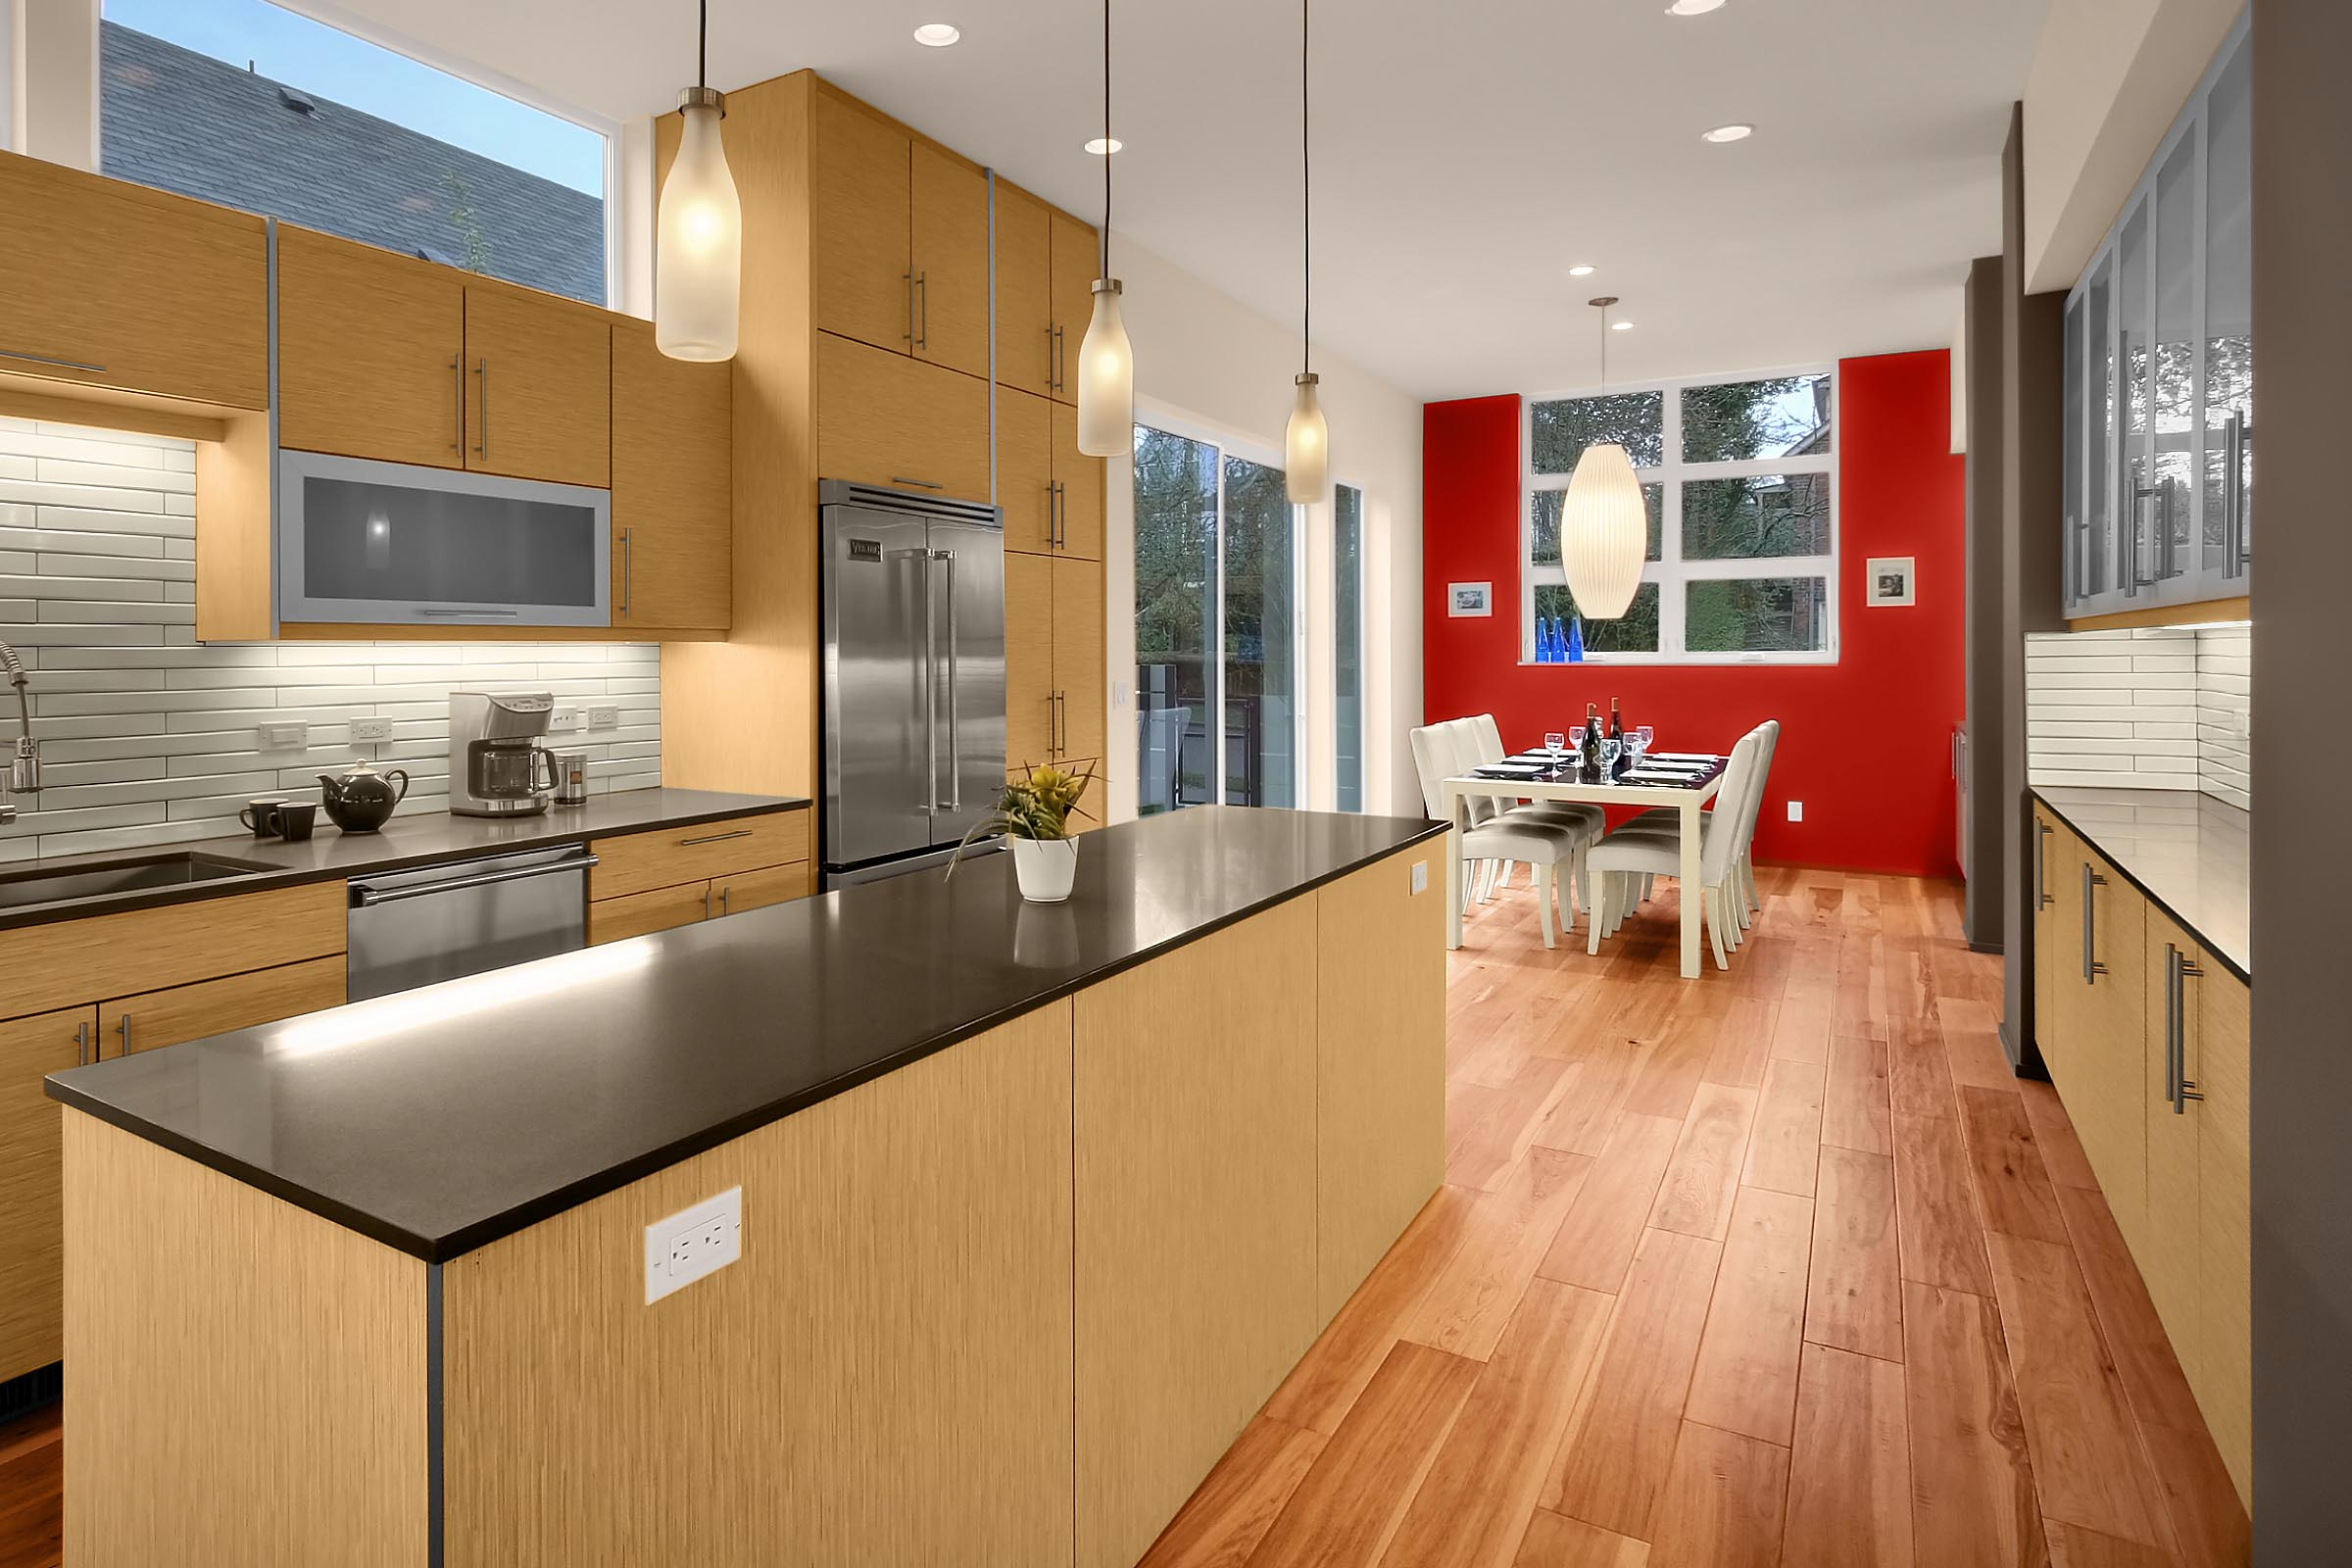 Kitchen renovation apartment bathroom remodeling near for Bath remodel near me